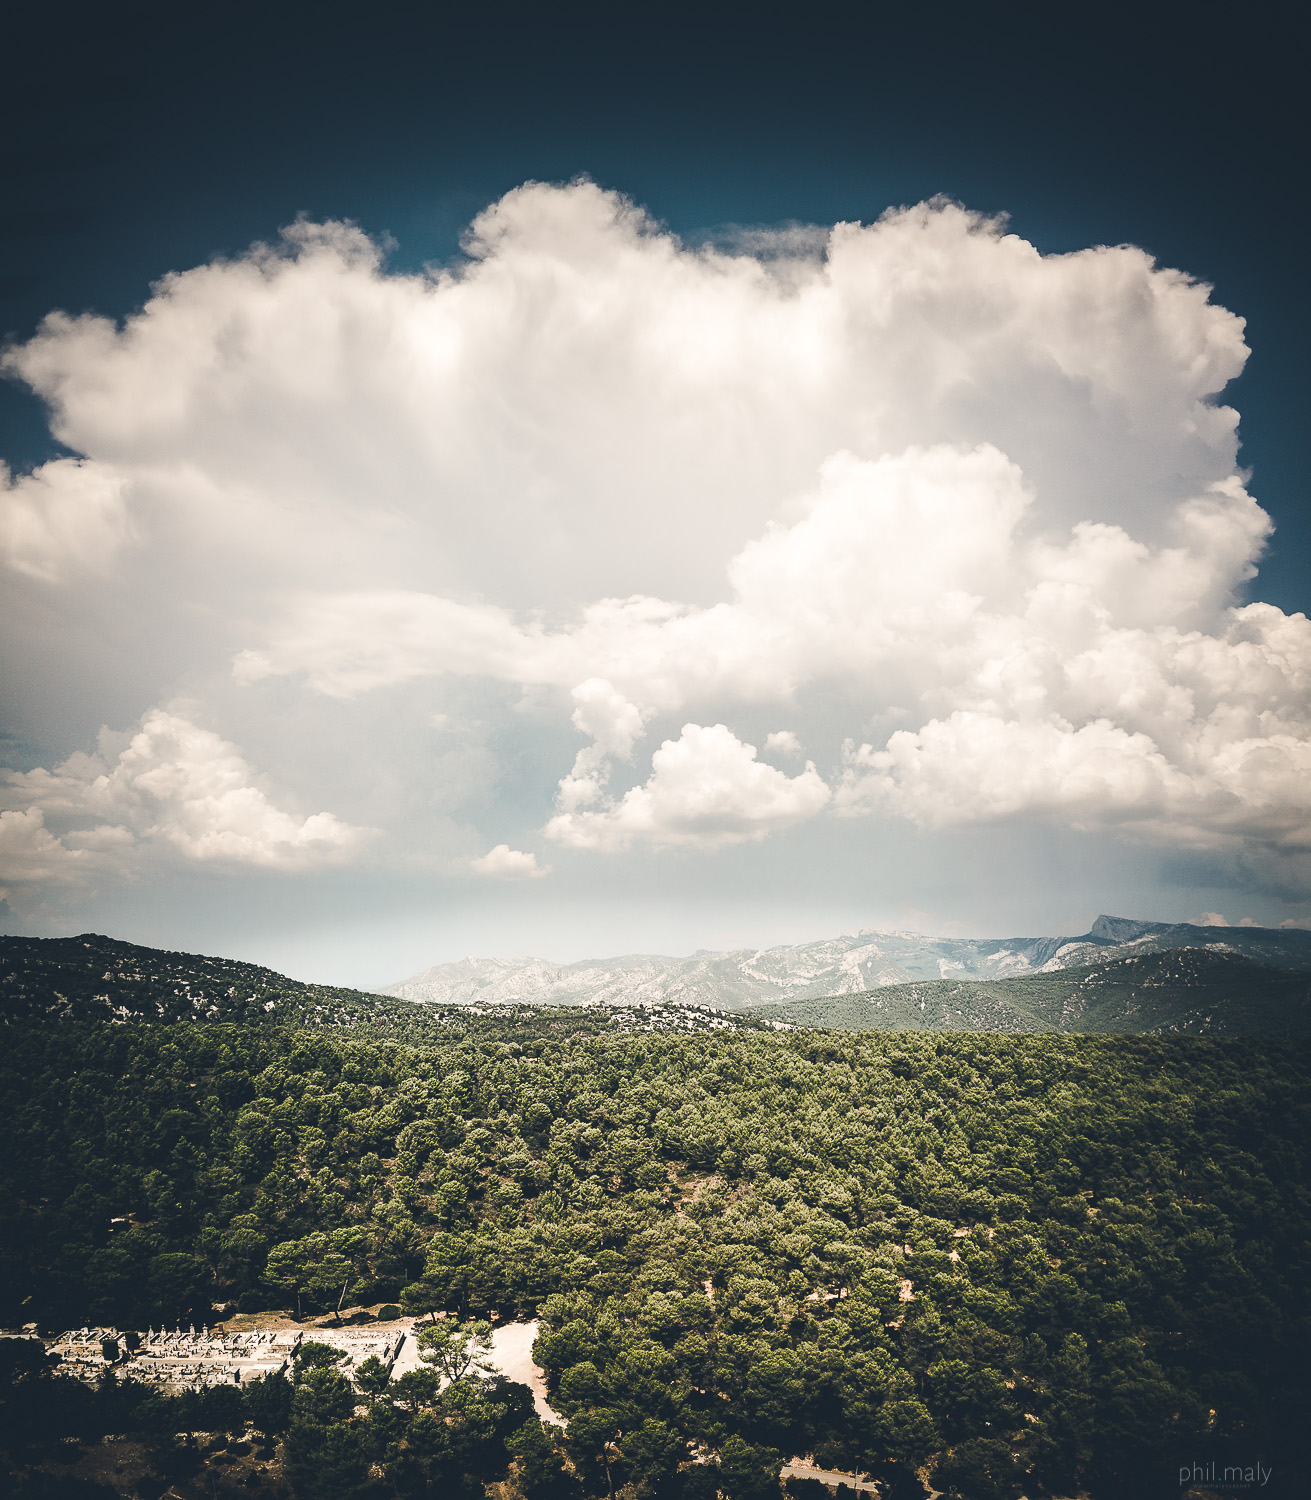 Massive with cloud over the mountains and forrests of Provence